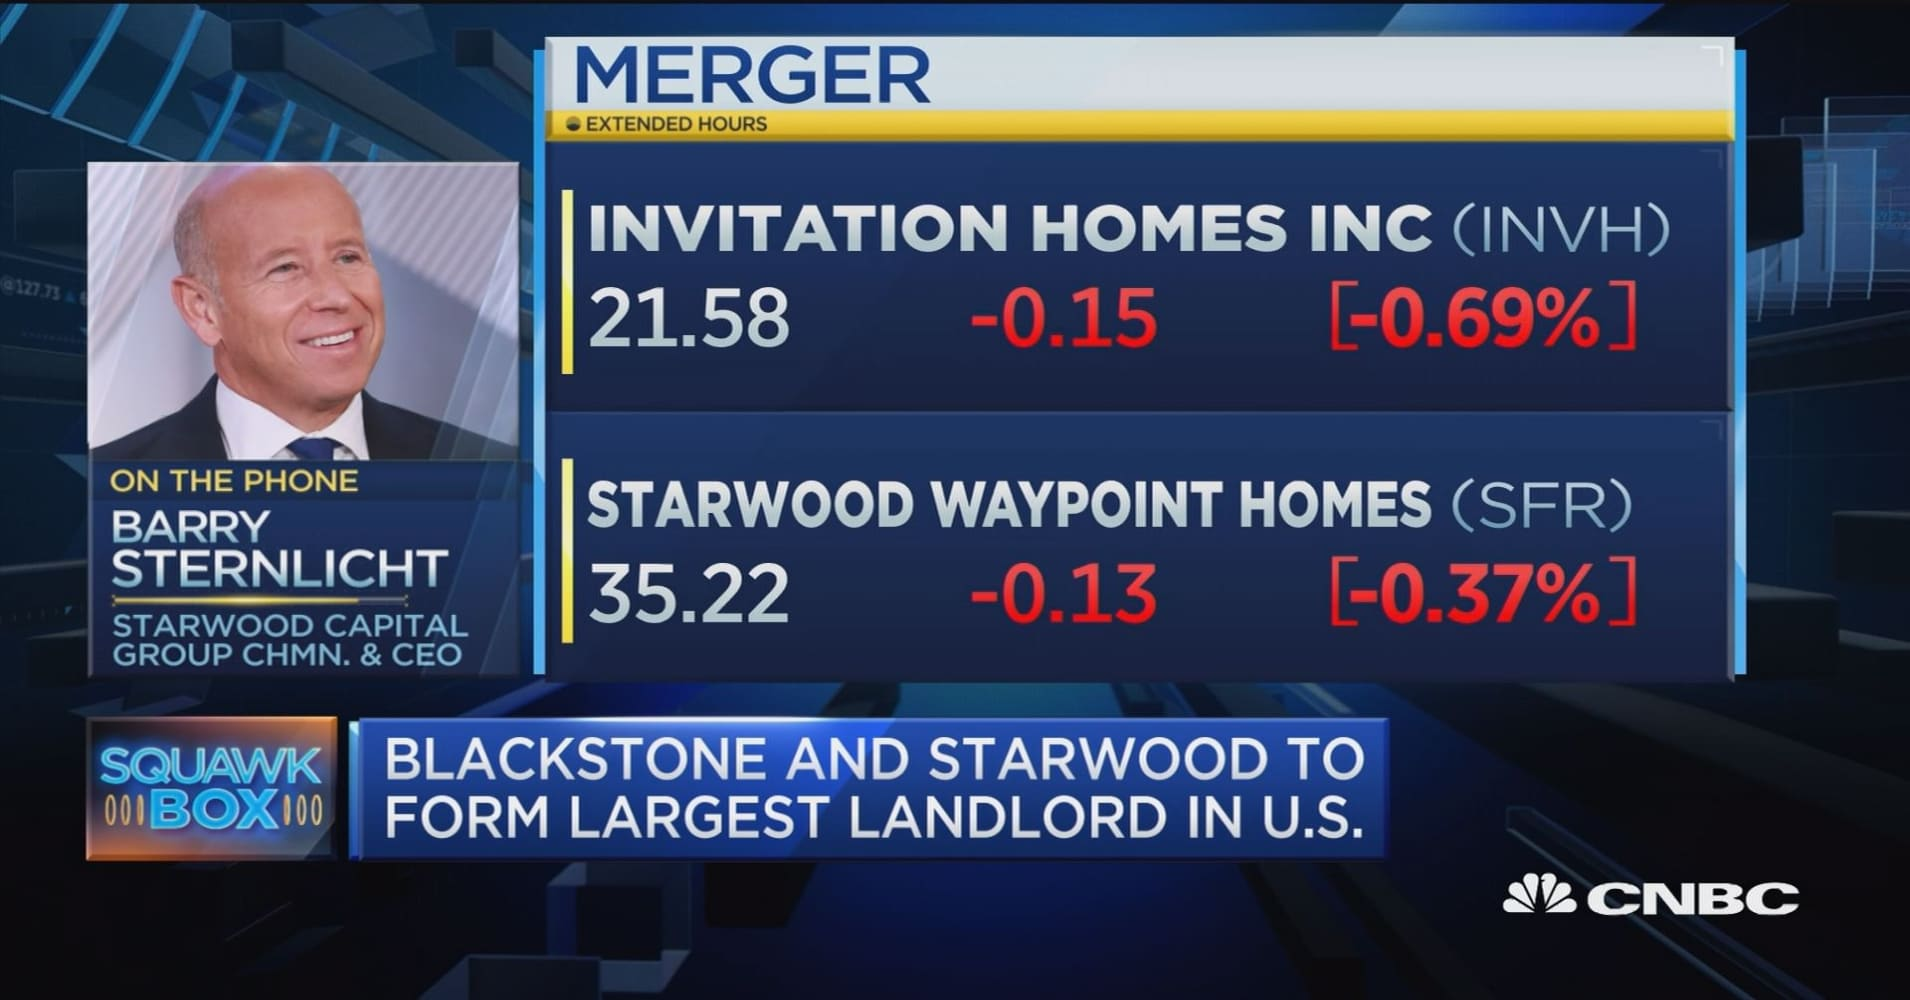 Invitation homes to be largest us landlord on starwood blackstone deal stopboris Image collections